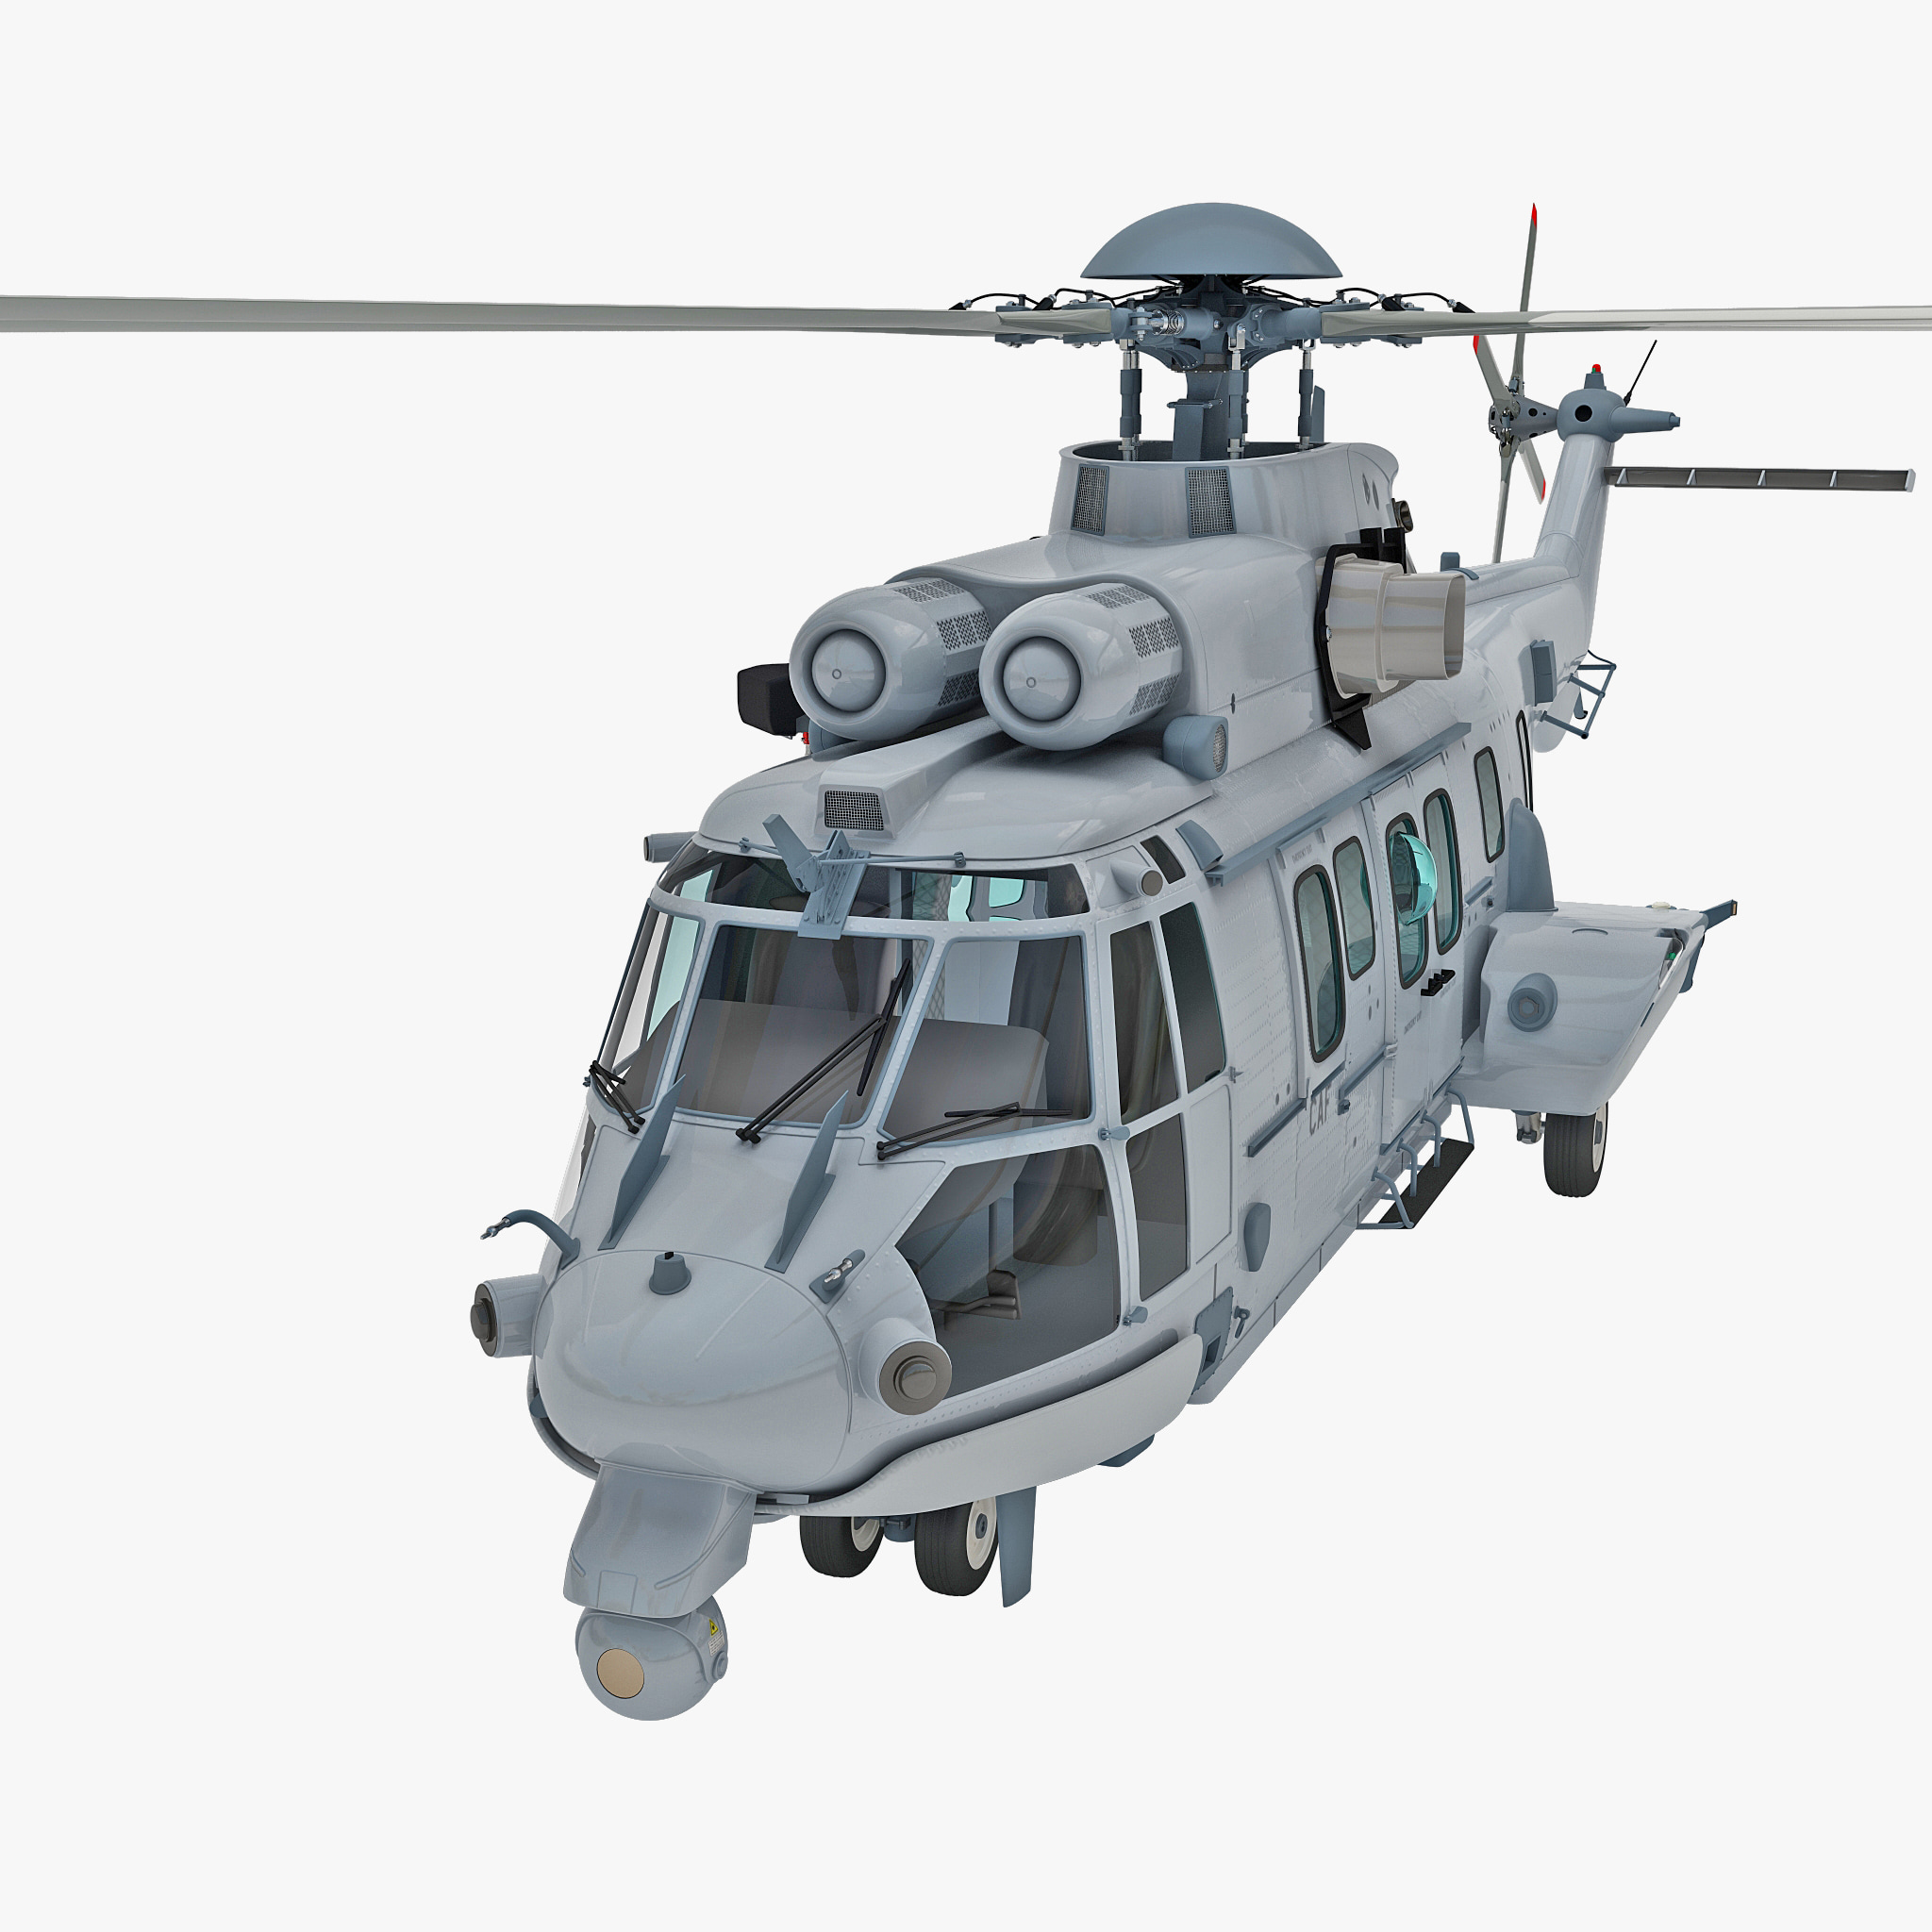 Eurocopter EC725 Caracal Tactical Transport Helicopter 2